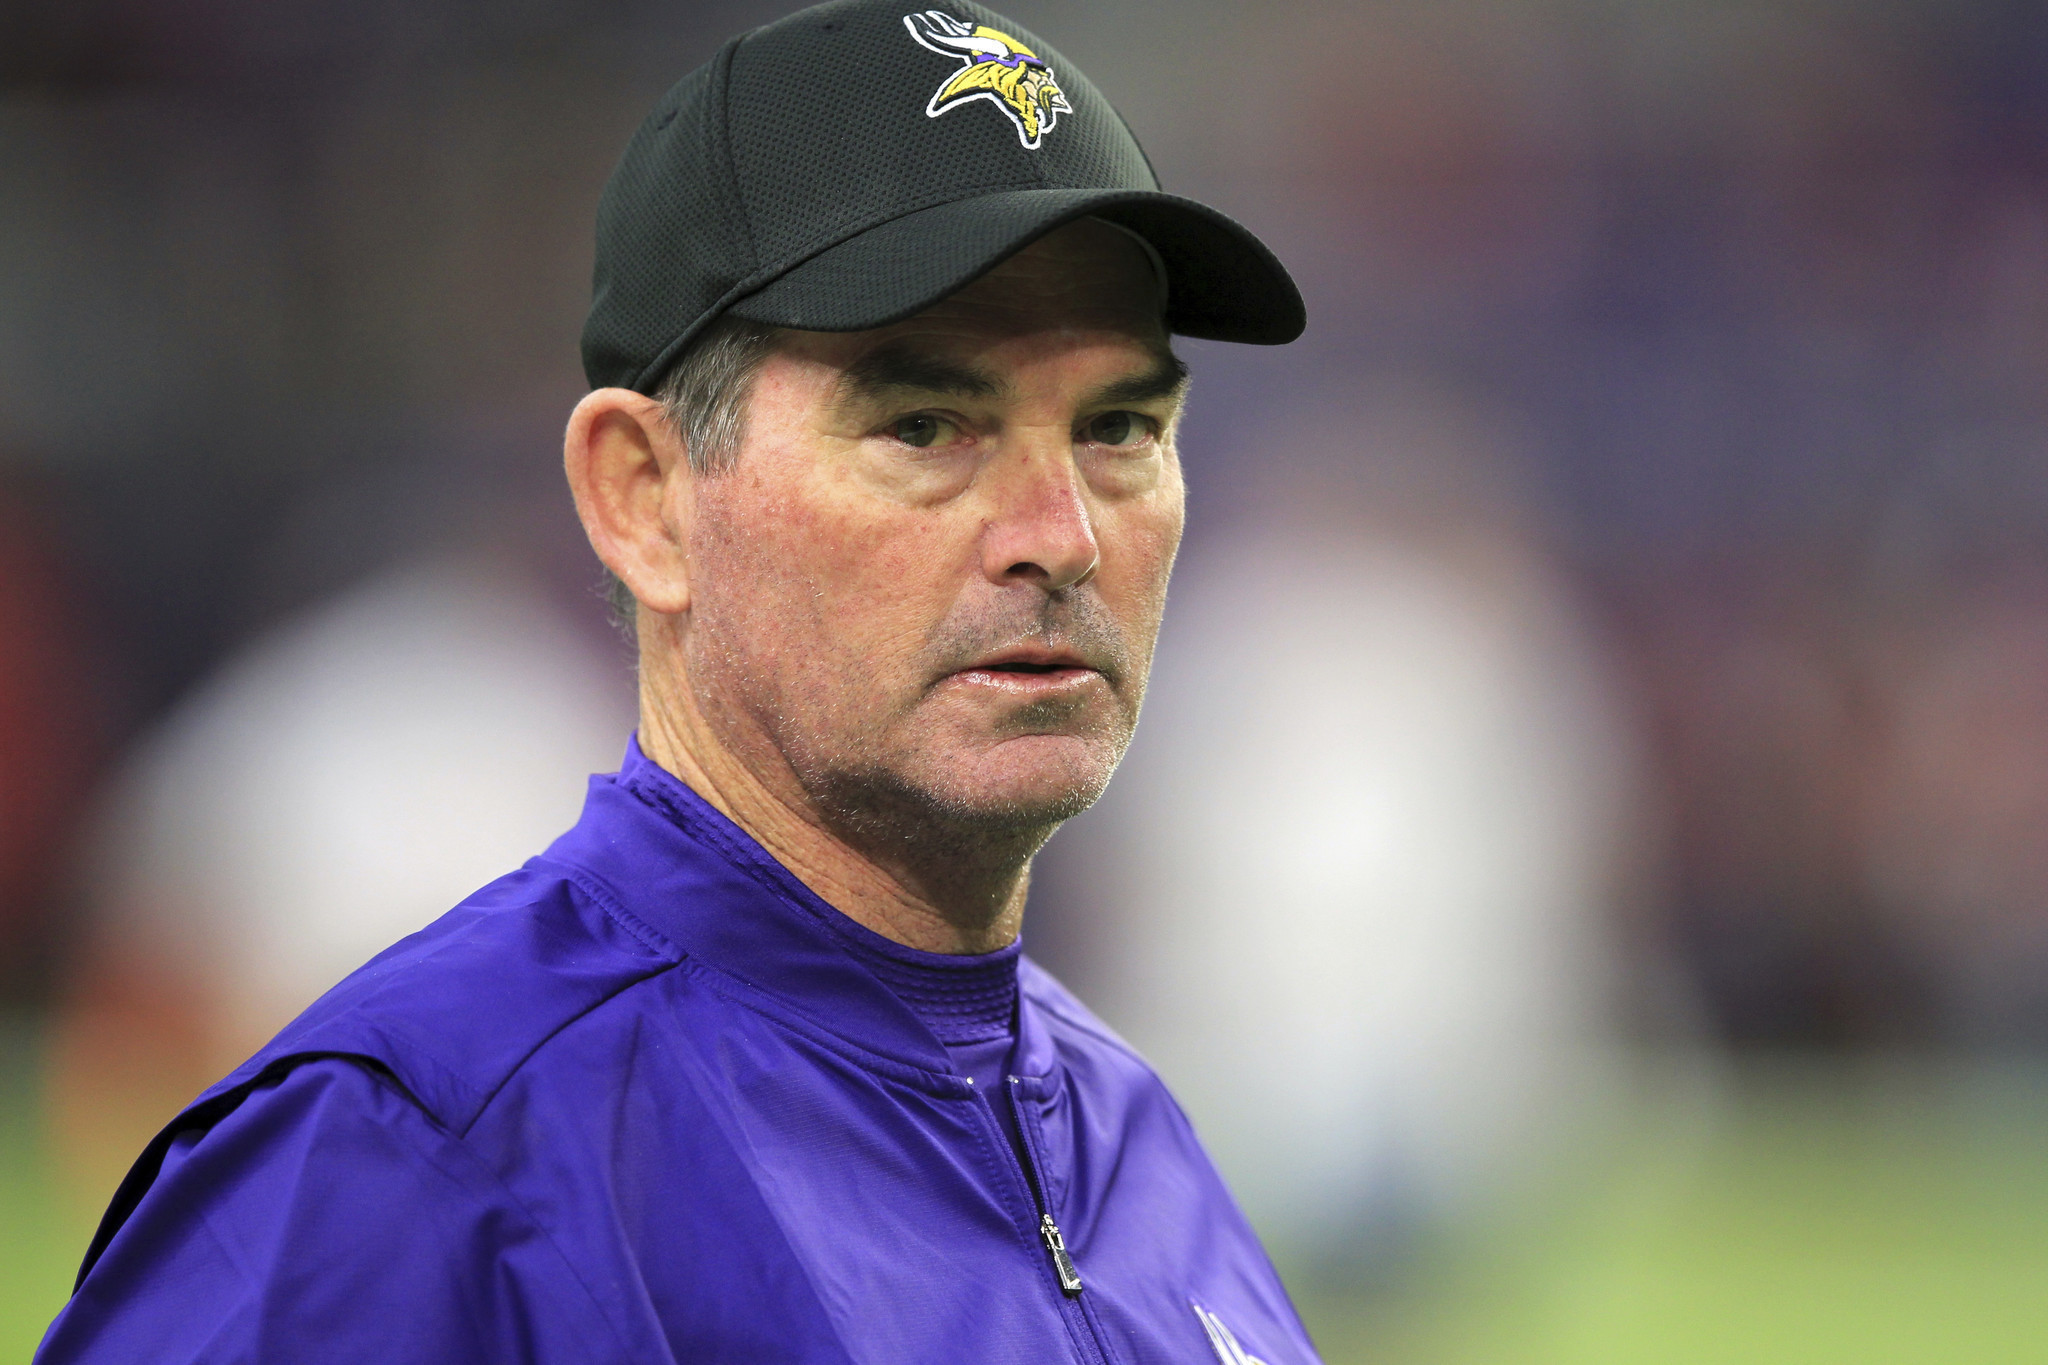 Vikings Coach Mike Zimmer Out Vs Cowboys After Emergency Eye Surgery